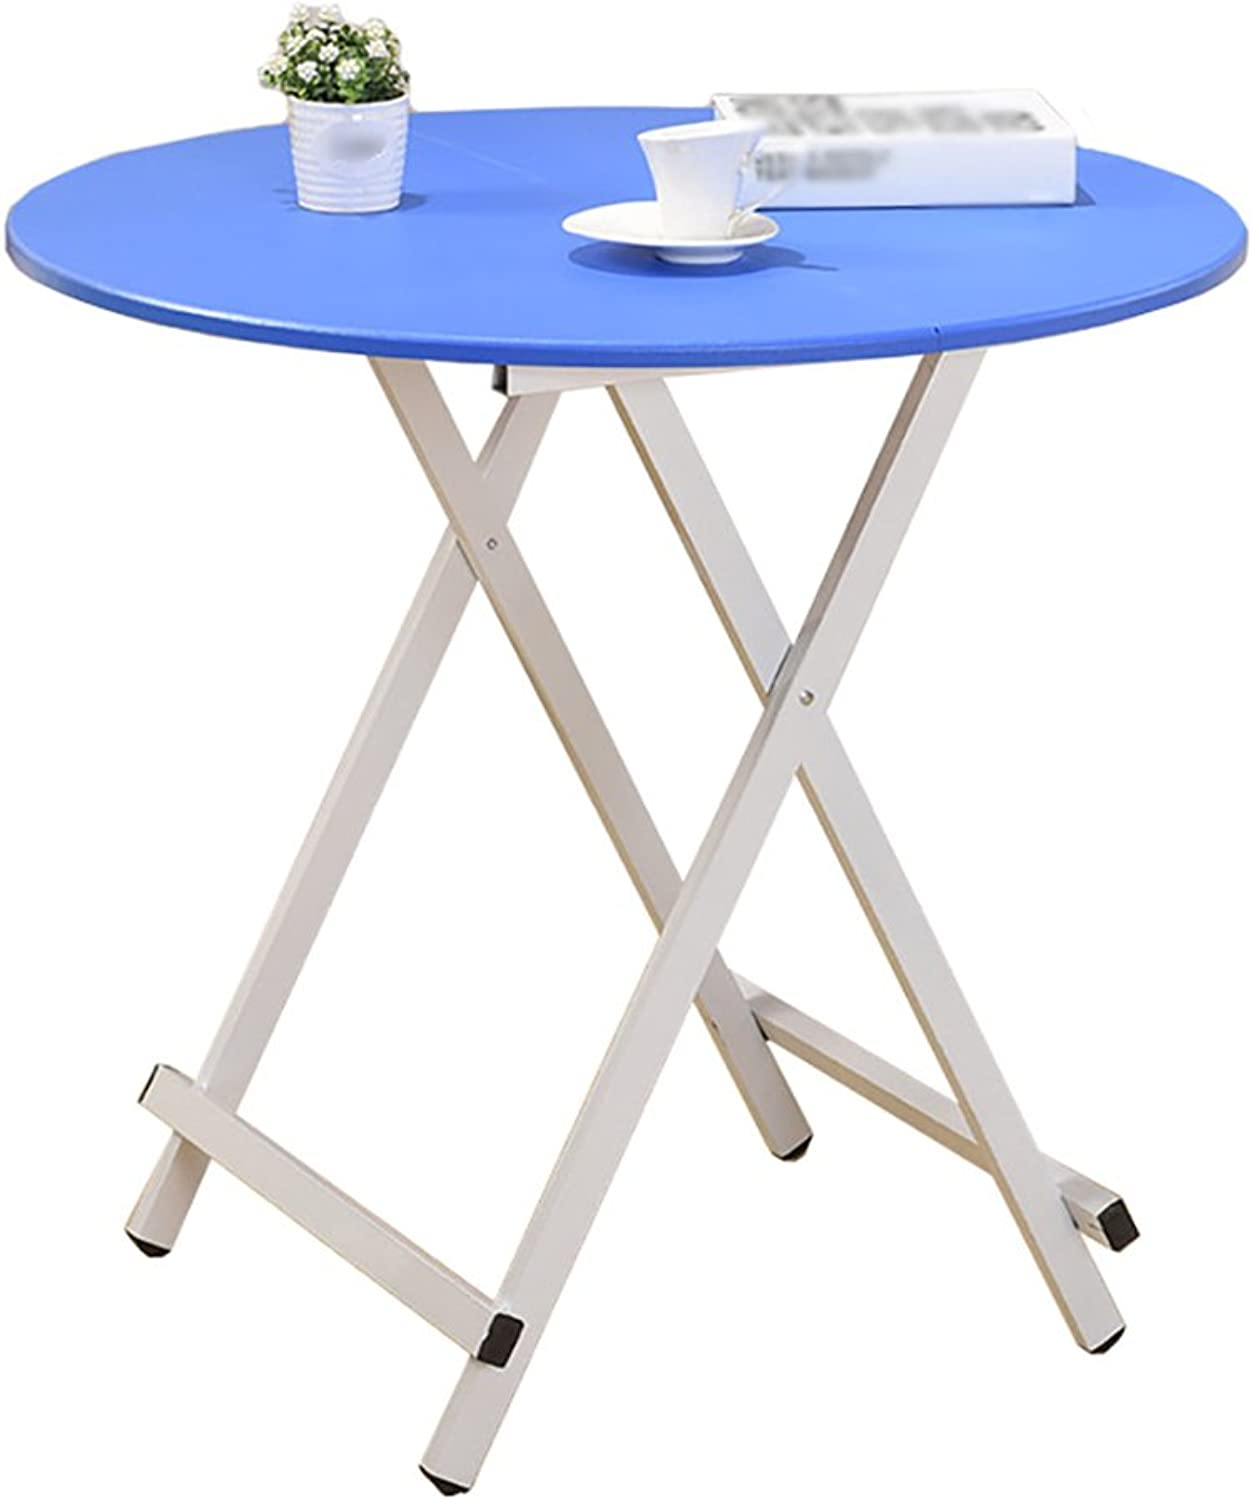 LXF Folding Table Folding Table Round Leisure Mahjong Table Save Space Modern Minimalist Style (color   bluee, Size   60 cm in Diameter)